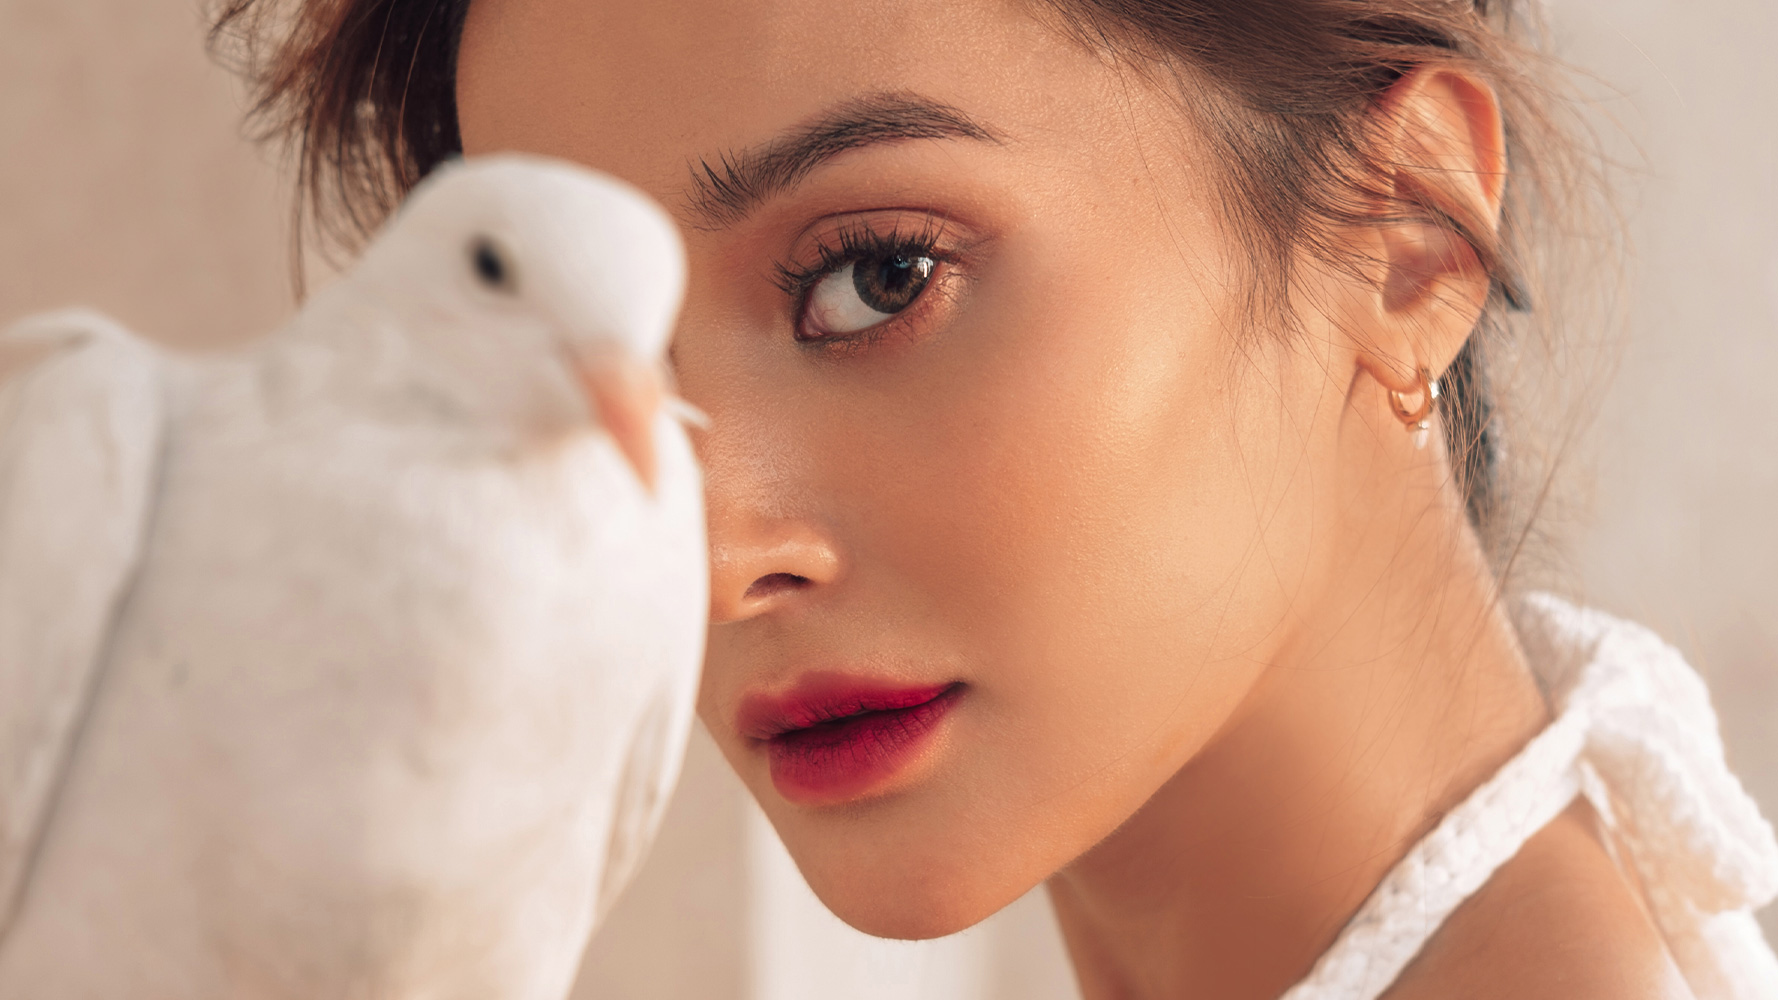 Kris Bernal Loves Being A Celebrity And There's Absolutely Nothing Wrong With That